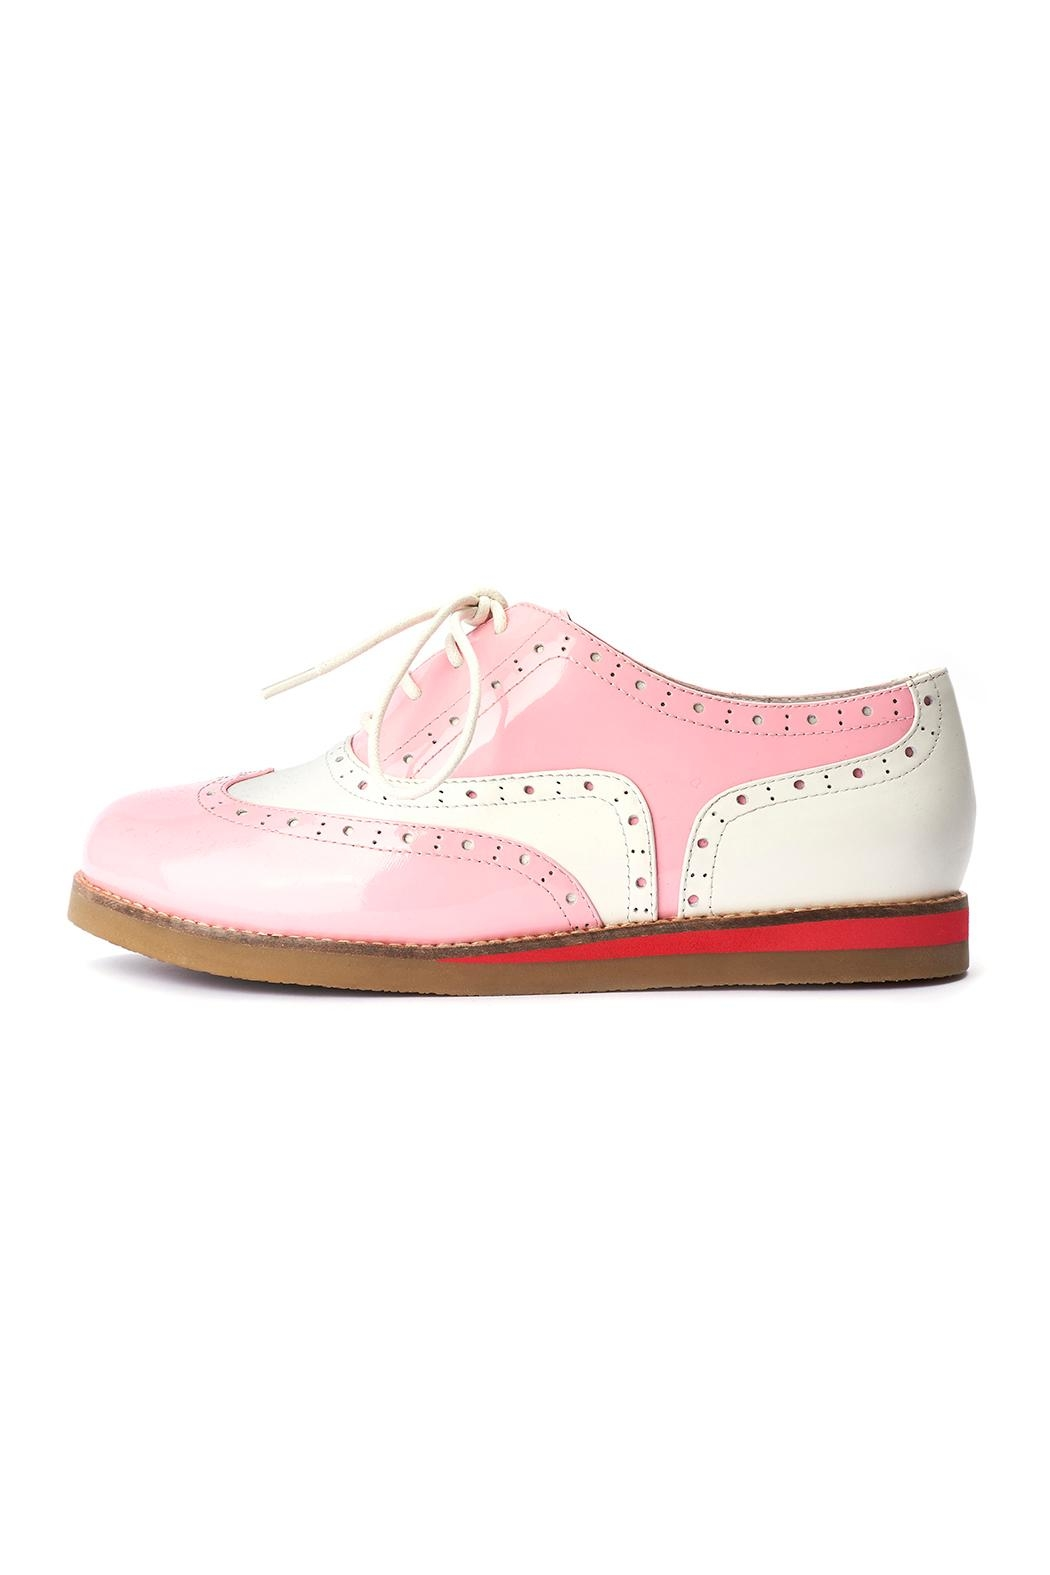 Lola Ramona Cecilia Wingtip Candy Shoes - Front Full Image